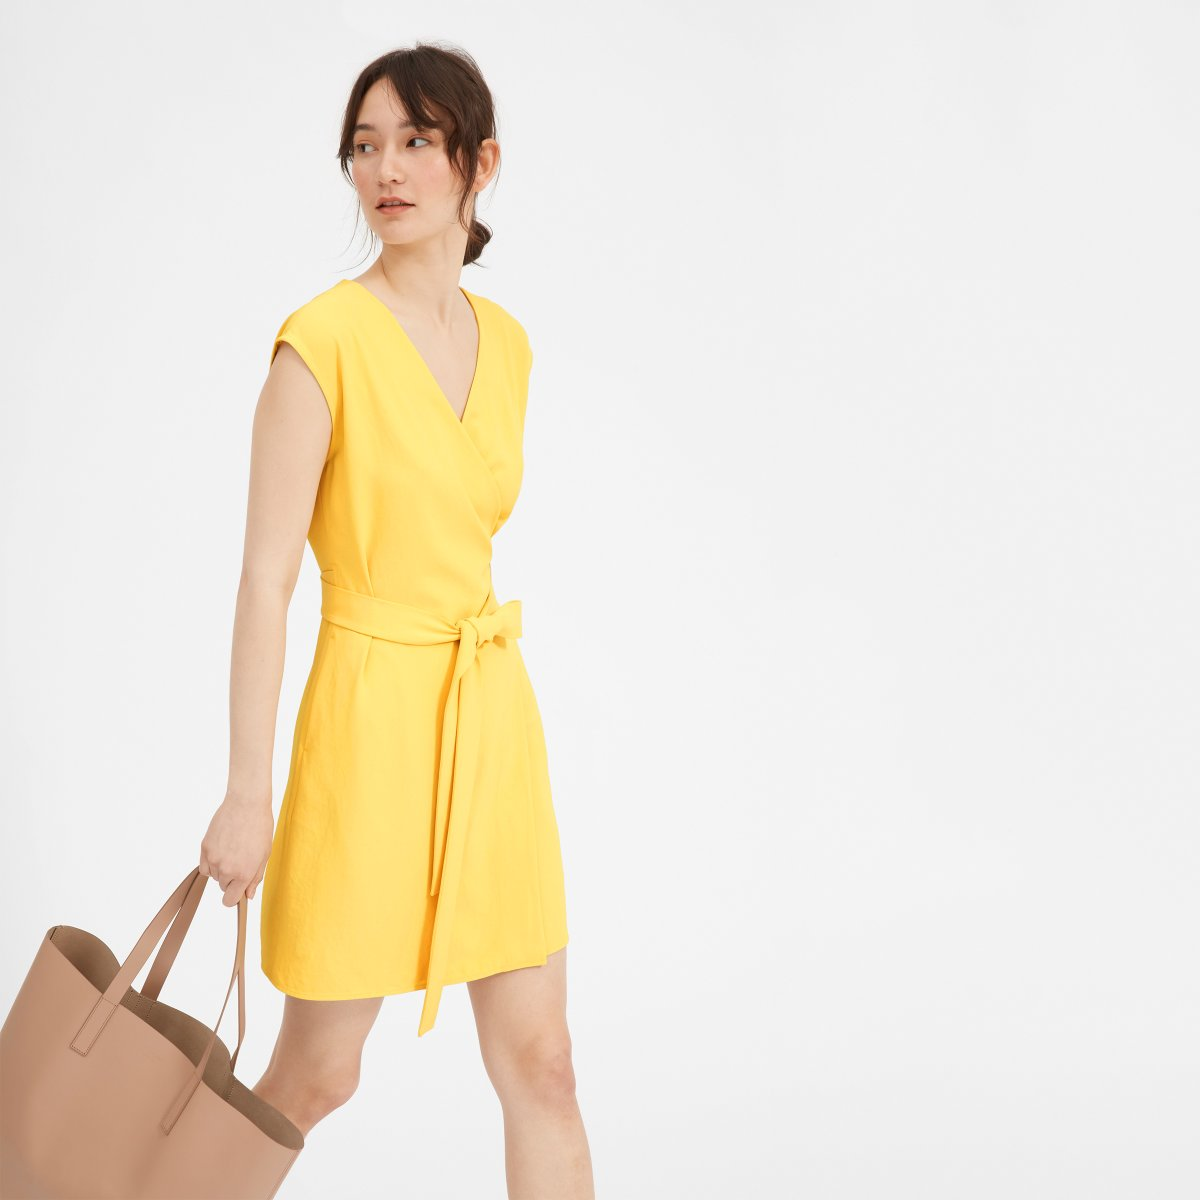 84db25b341c ... Japanese GoWeave Short-. Your browser does not support HTML5 video.  Here is the link to the video w wrap dress short yellow mona.